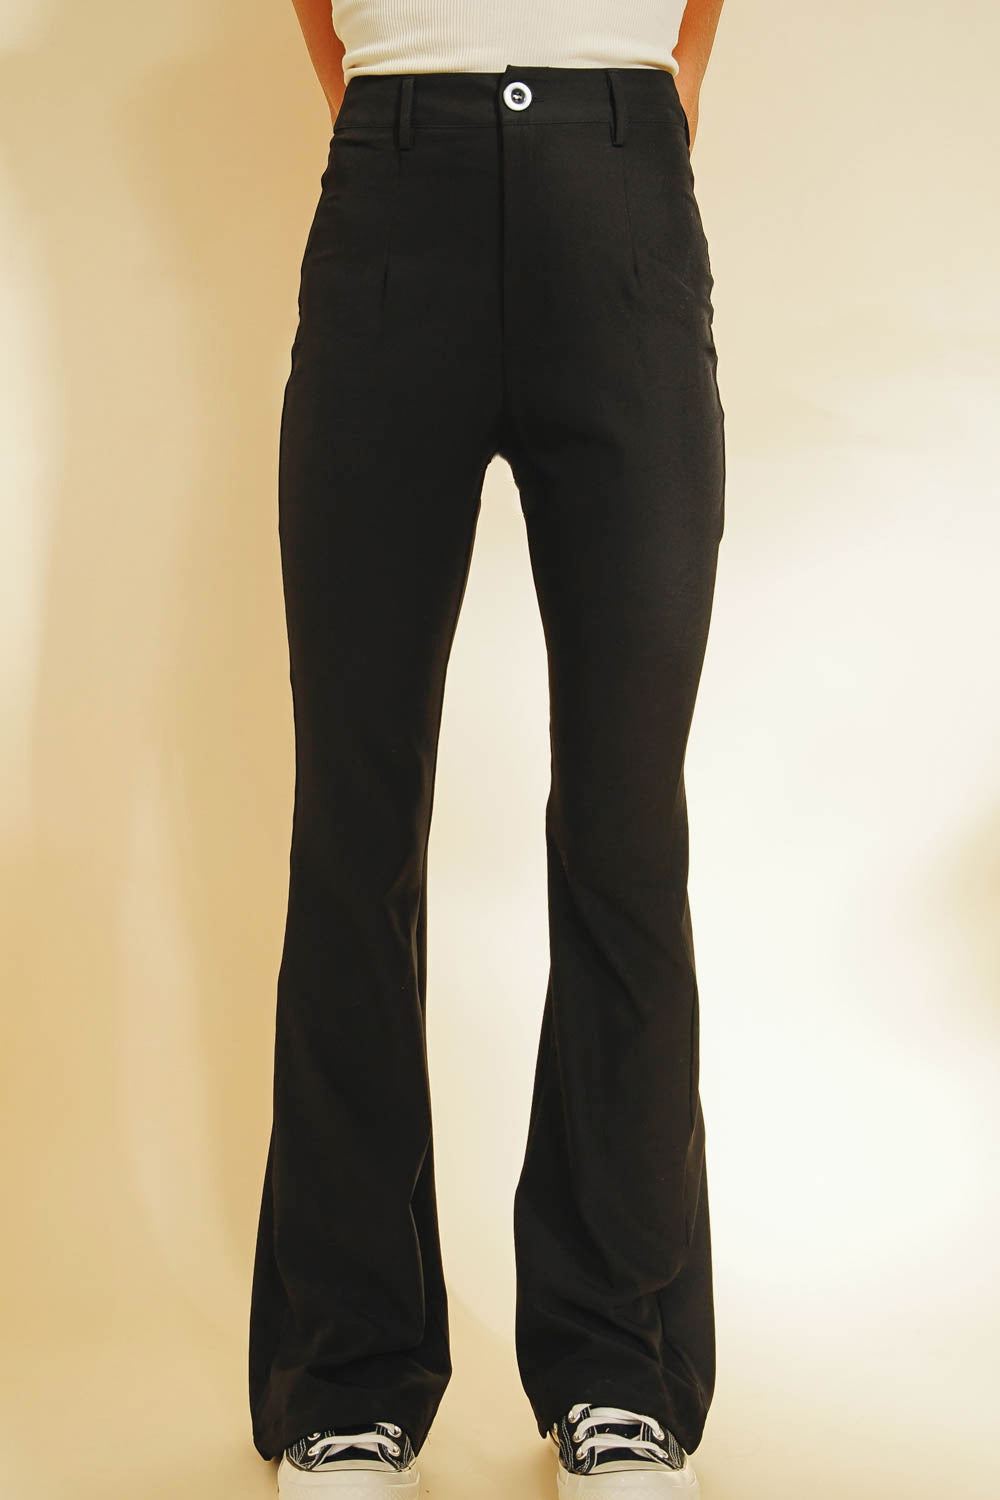 VRG GRL To The Bar Pants // Black